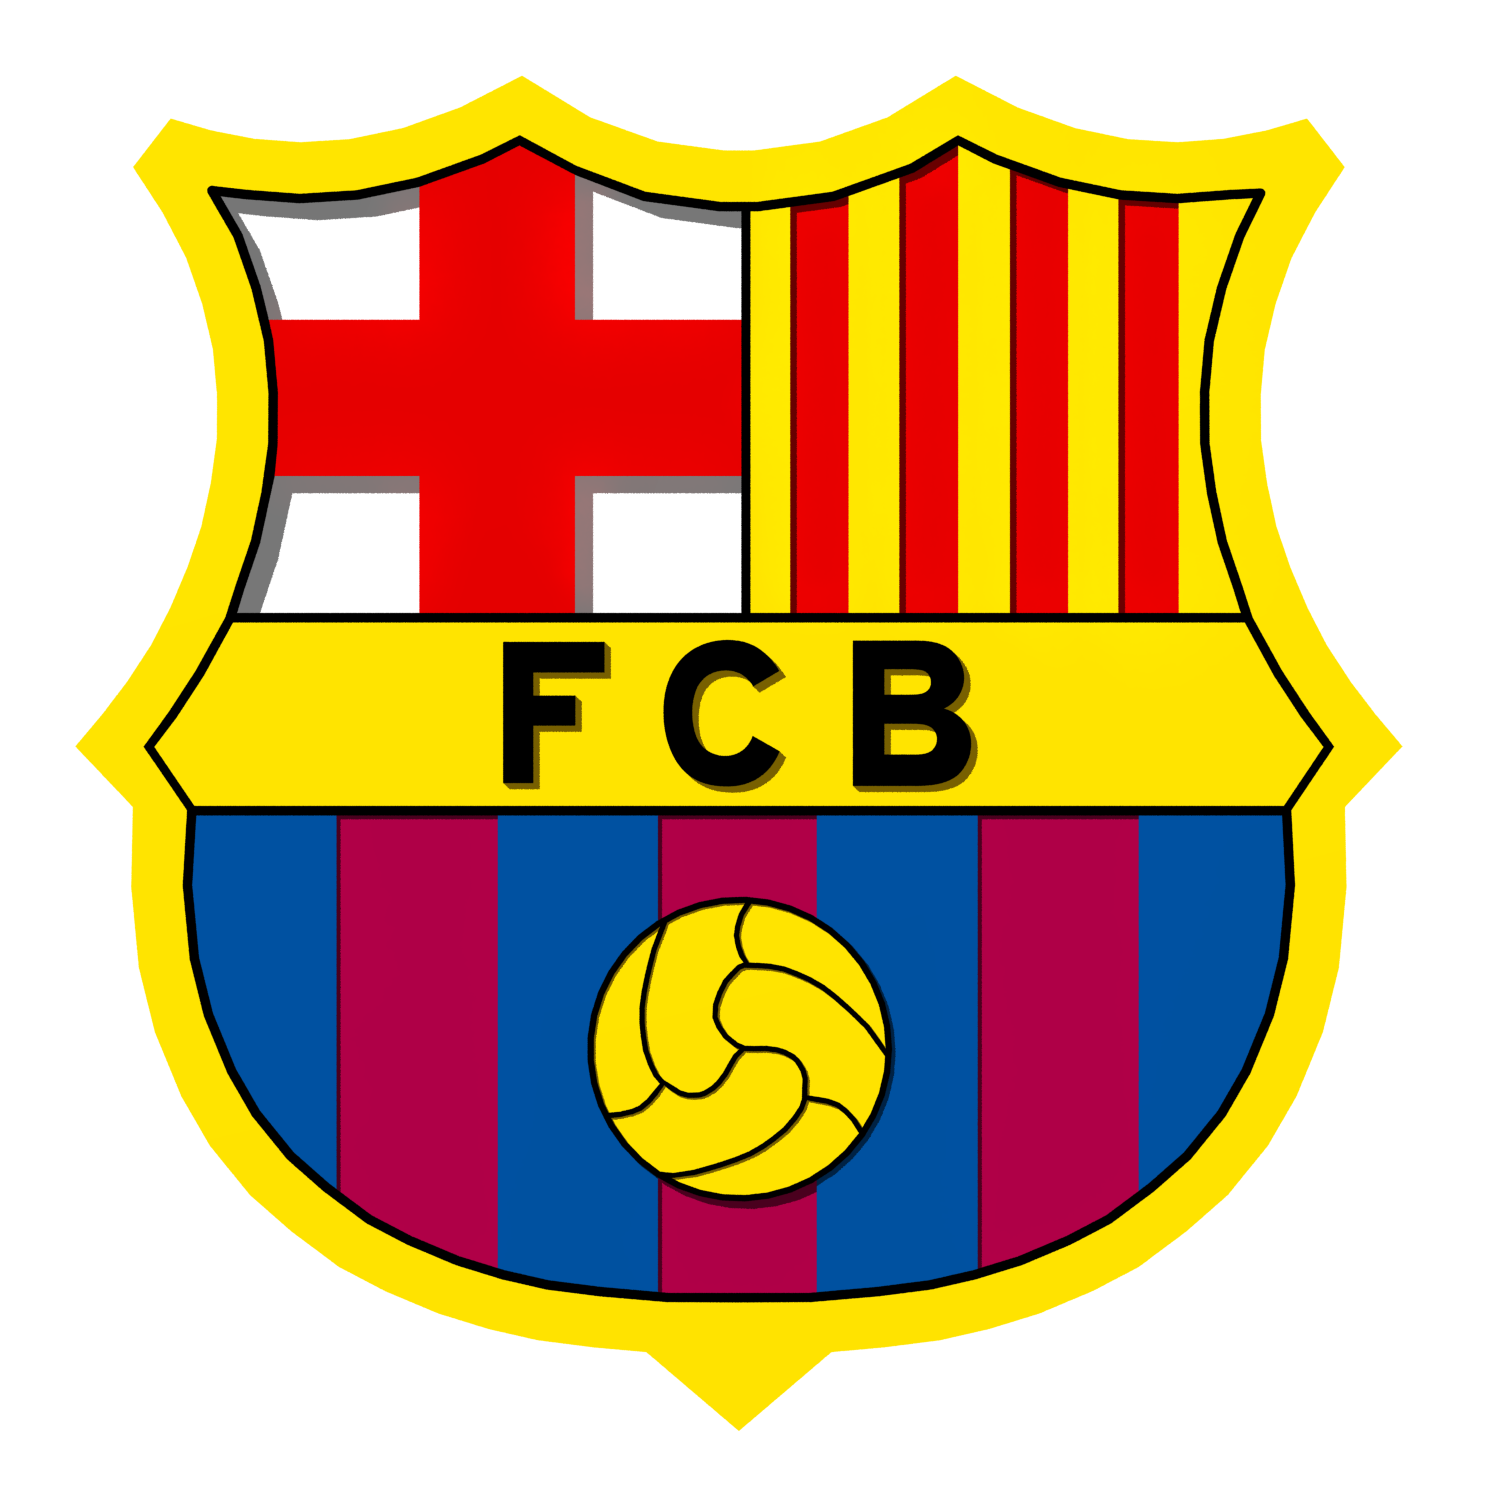 fc barcelona logo 3d model in sports equipment 3dexport fc barcelona logo 3d model in sports equipment 3dexport